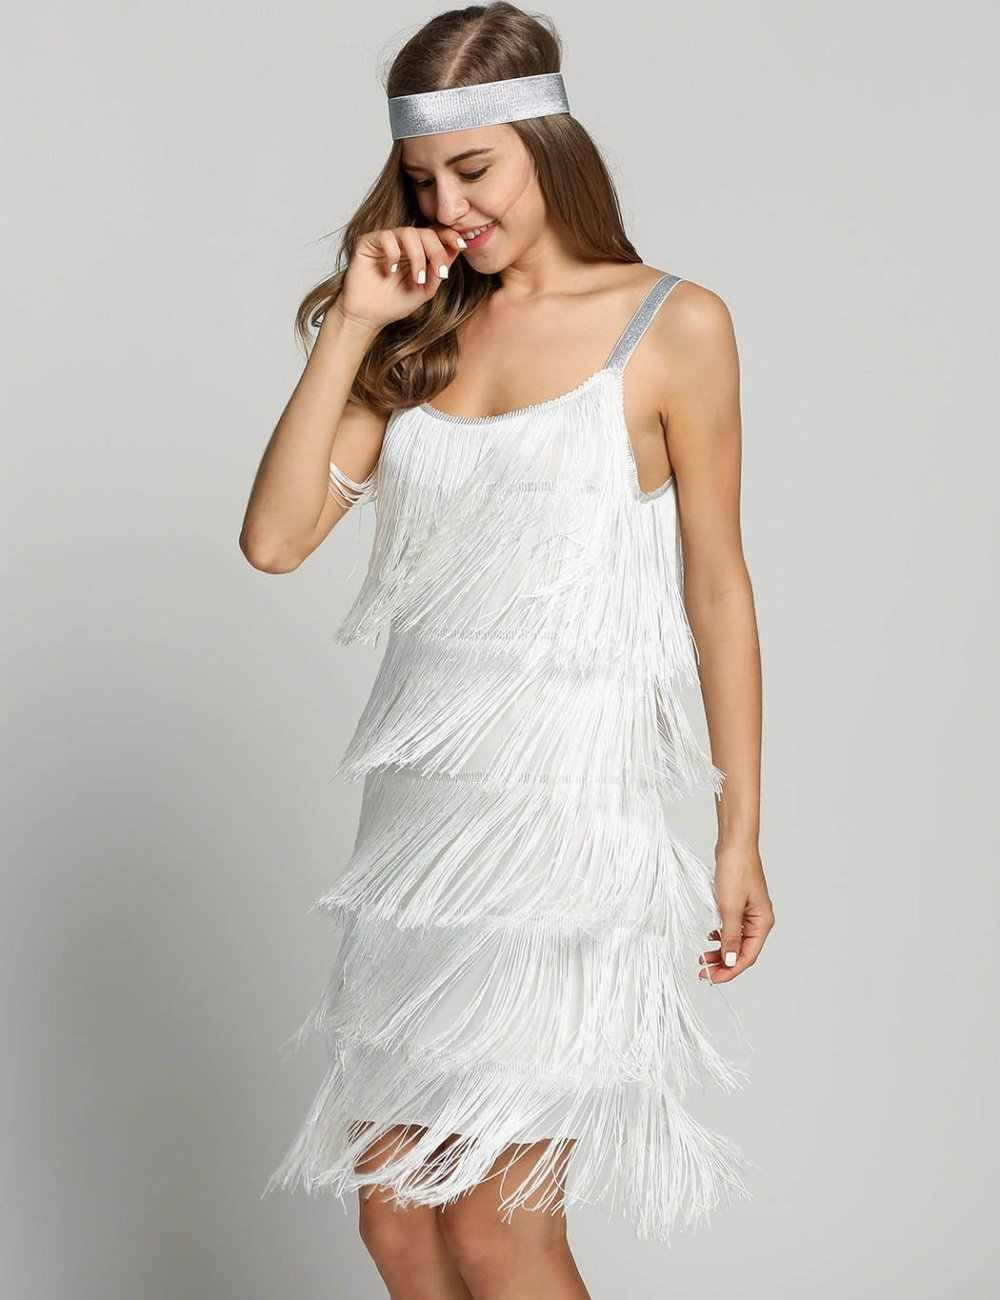 1920s Great Gatsby Dress Slash Neck Stry Tiered Fringe Vintage Fler Party Fancy Costumes With Headband